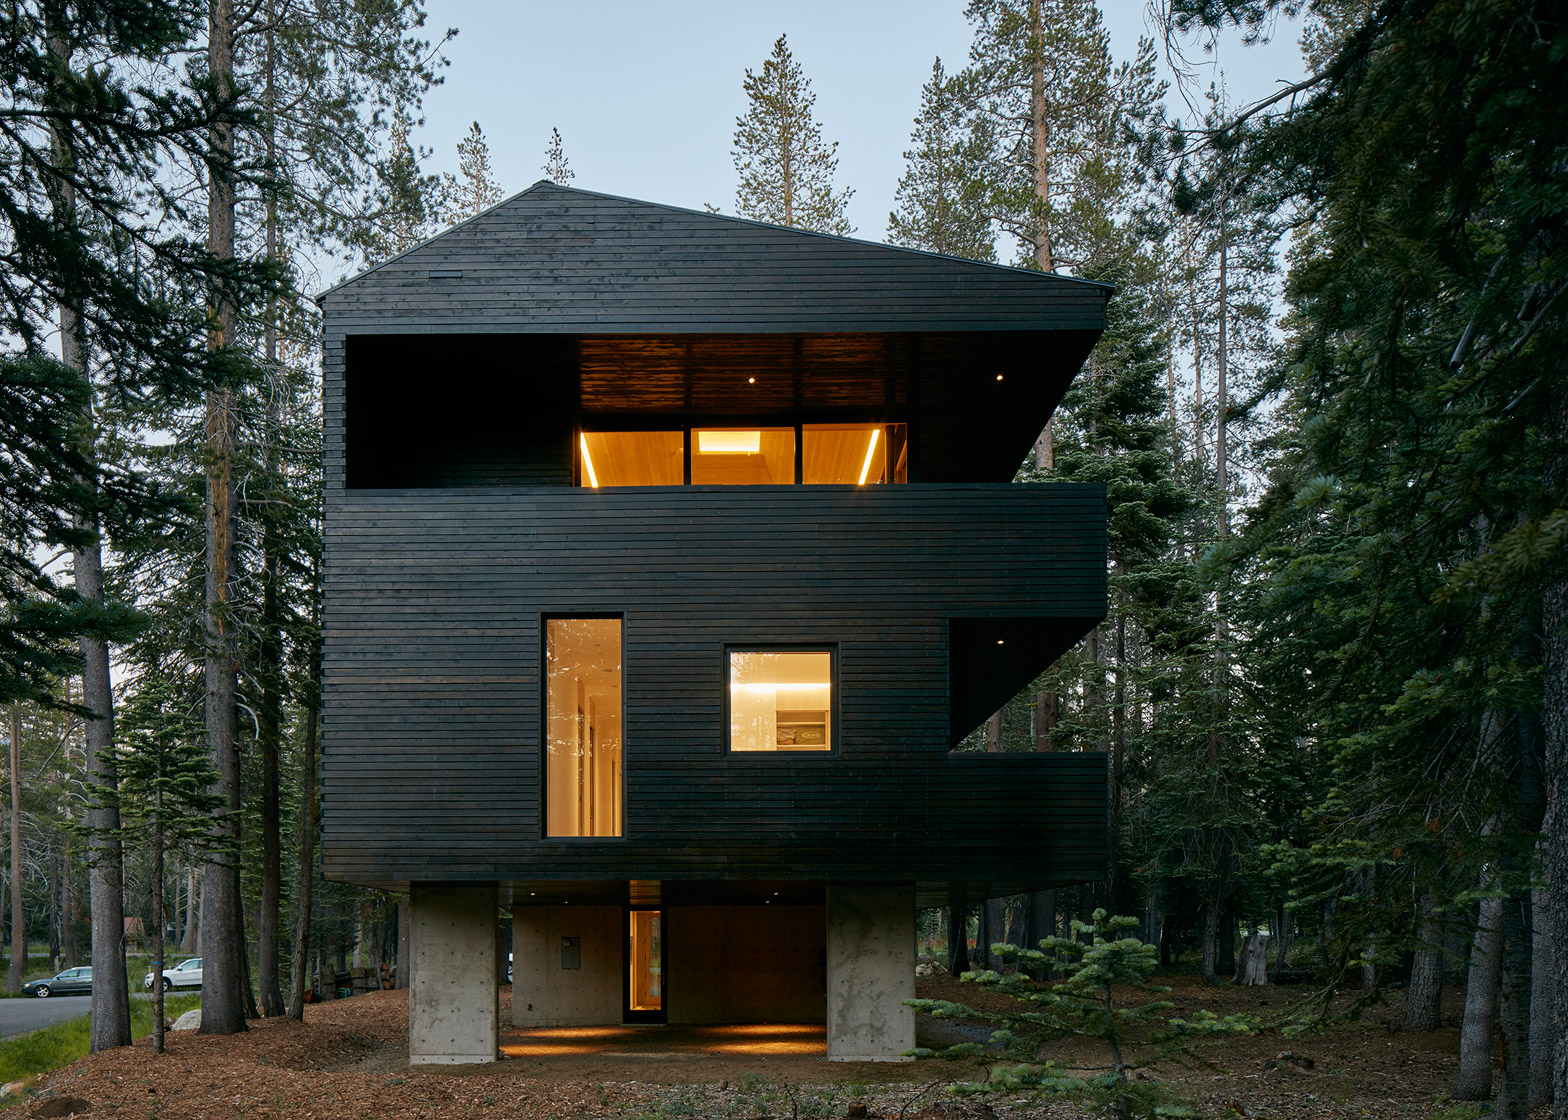 Residential Architecture: Trollhus by Mork Ulnes in California, USA